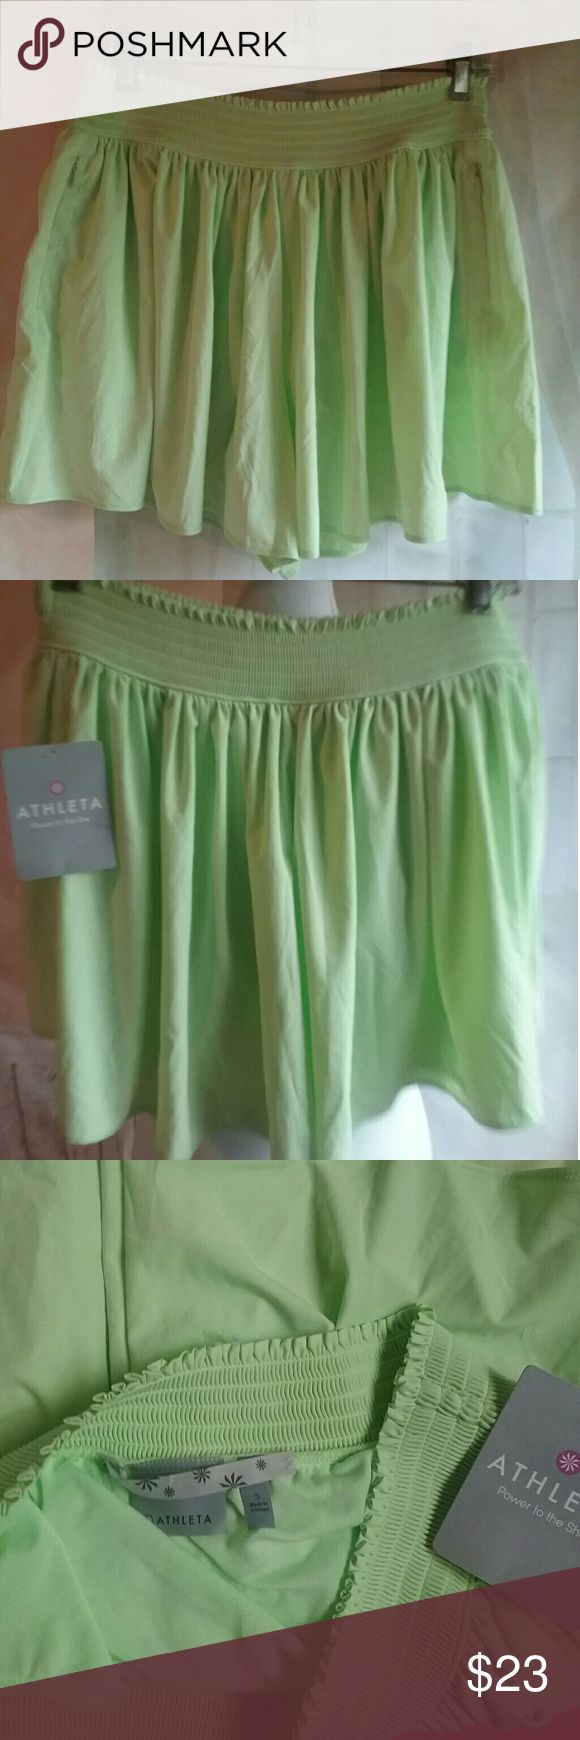 Athletta Lime Green Sneaky Short New $49 This is Athletta  lime-green sneaky short. It is new with tags. Suggested manufactured retail price is $49. Great color for spring to Summer. athletta  Shorts Skorts